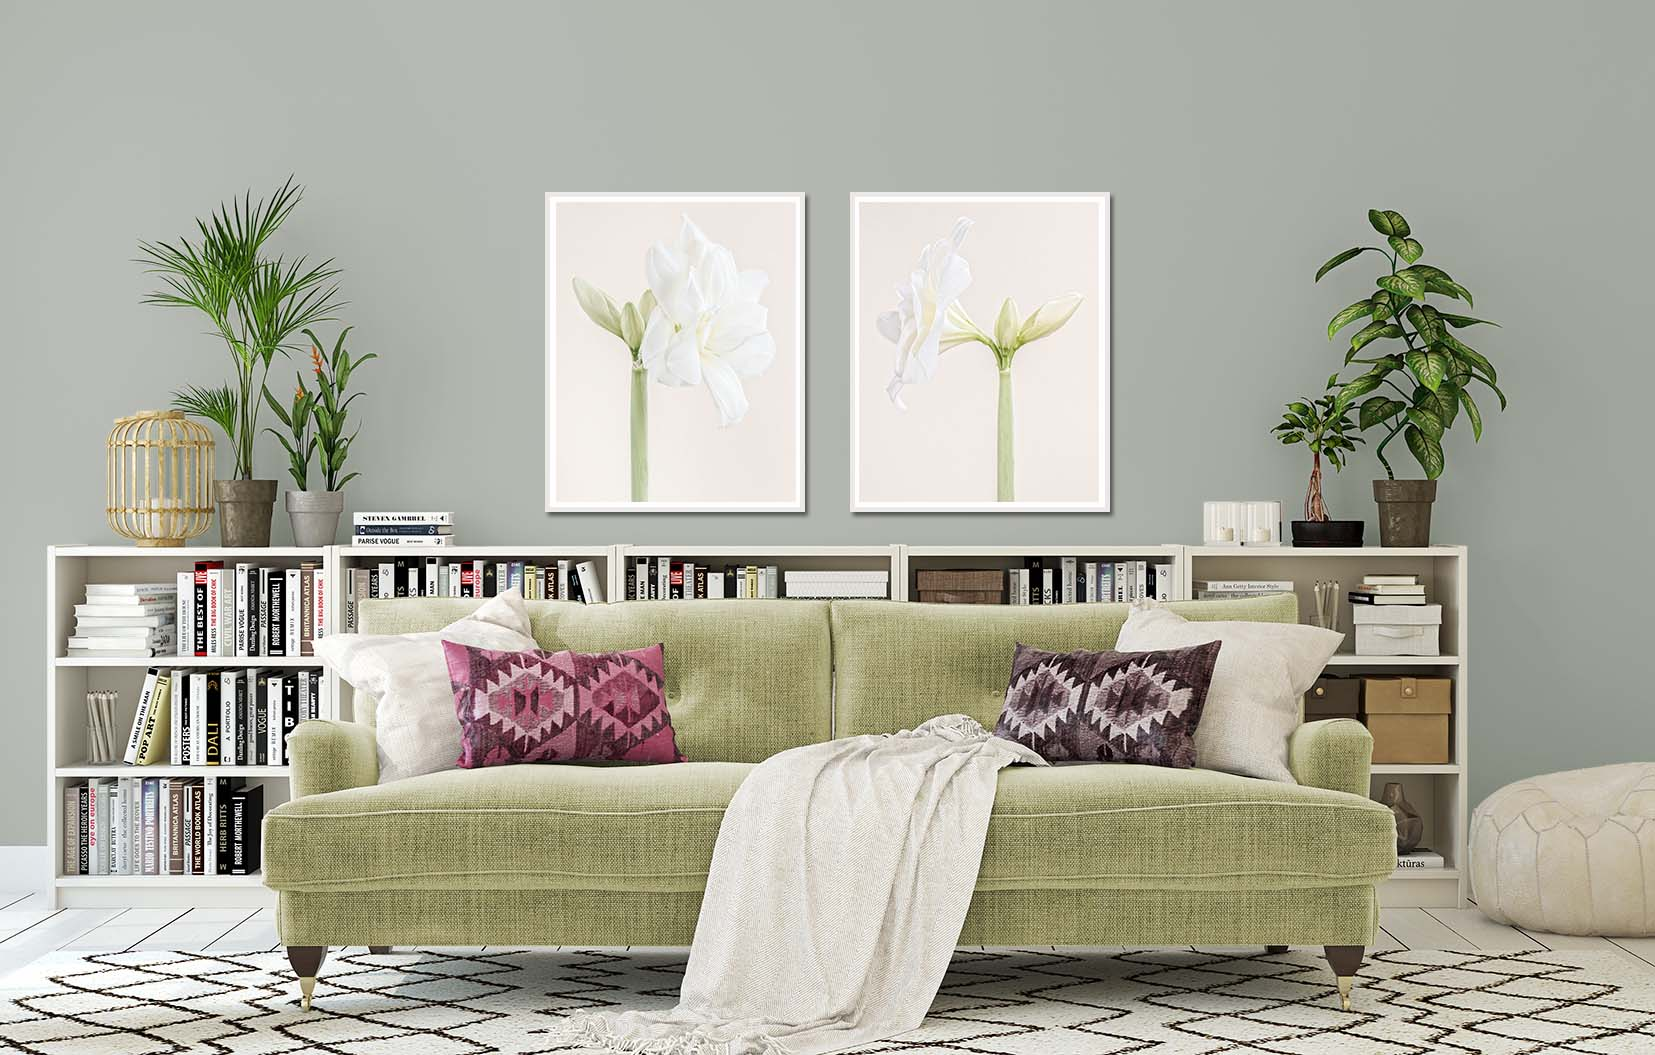 """Two prints of White Nymph I + II - white Hippeastrum """"White Nymph"""" (commonly known as an Amaryllis) Limited edition floral prints by fine art photographer Paul Coghlin"""